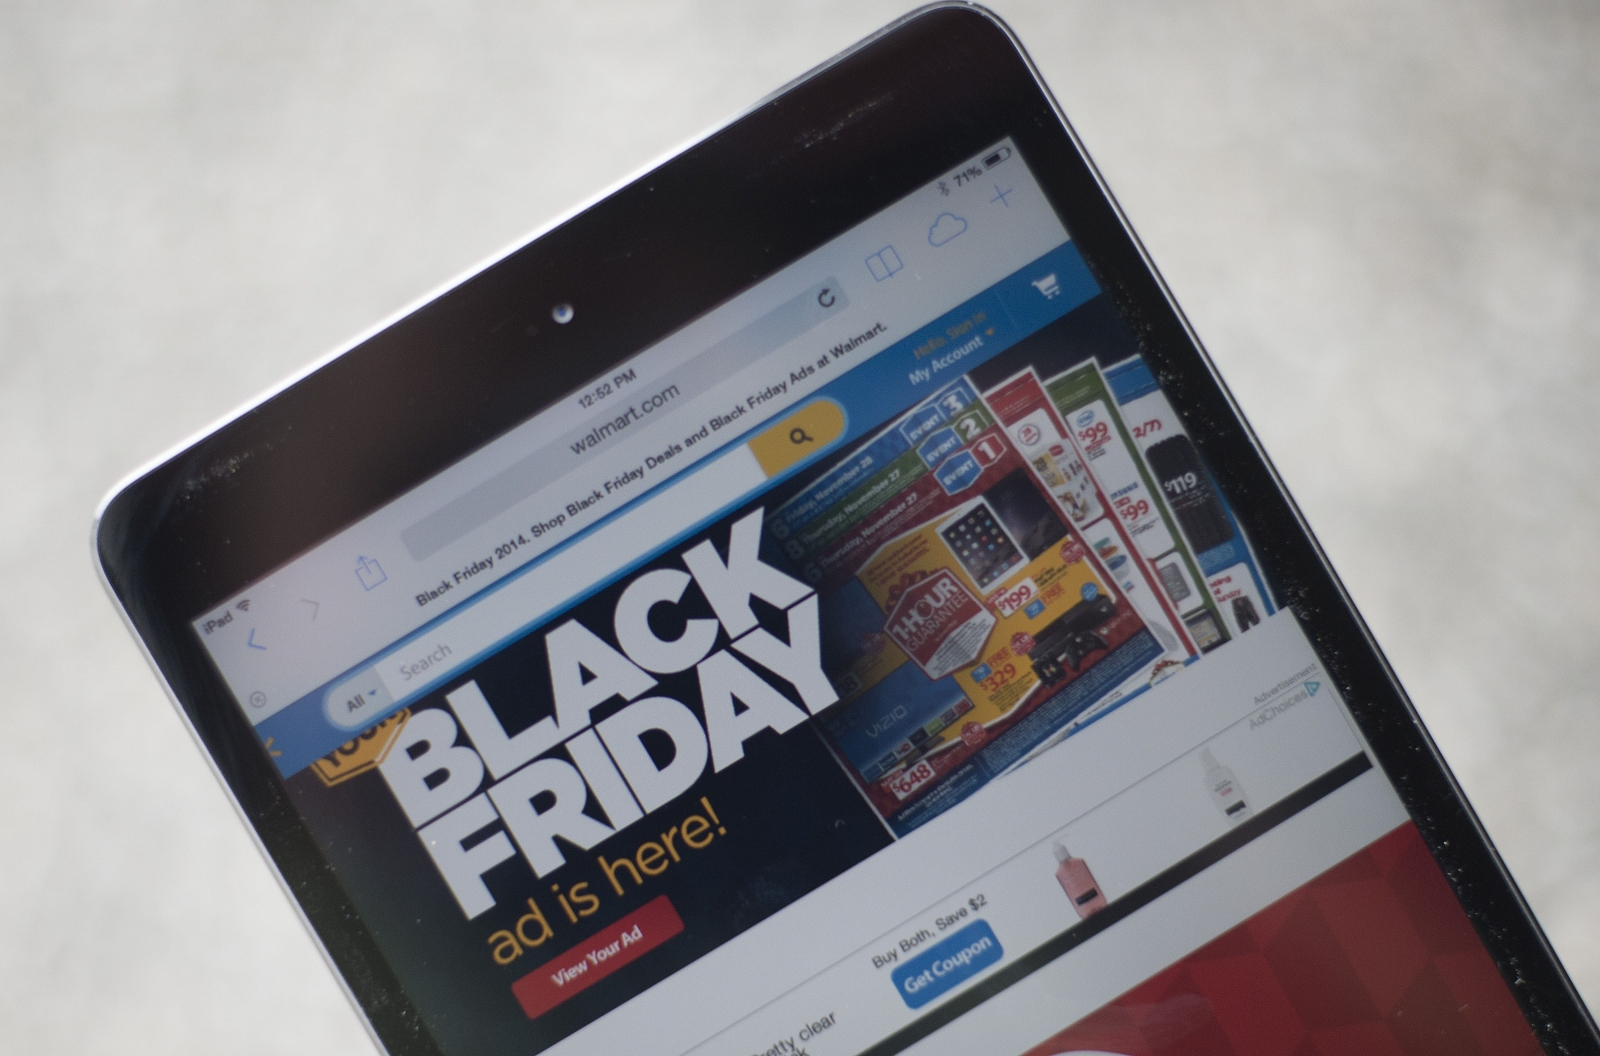 Amazon Black Friday Deals Announced